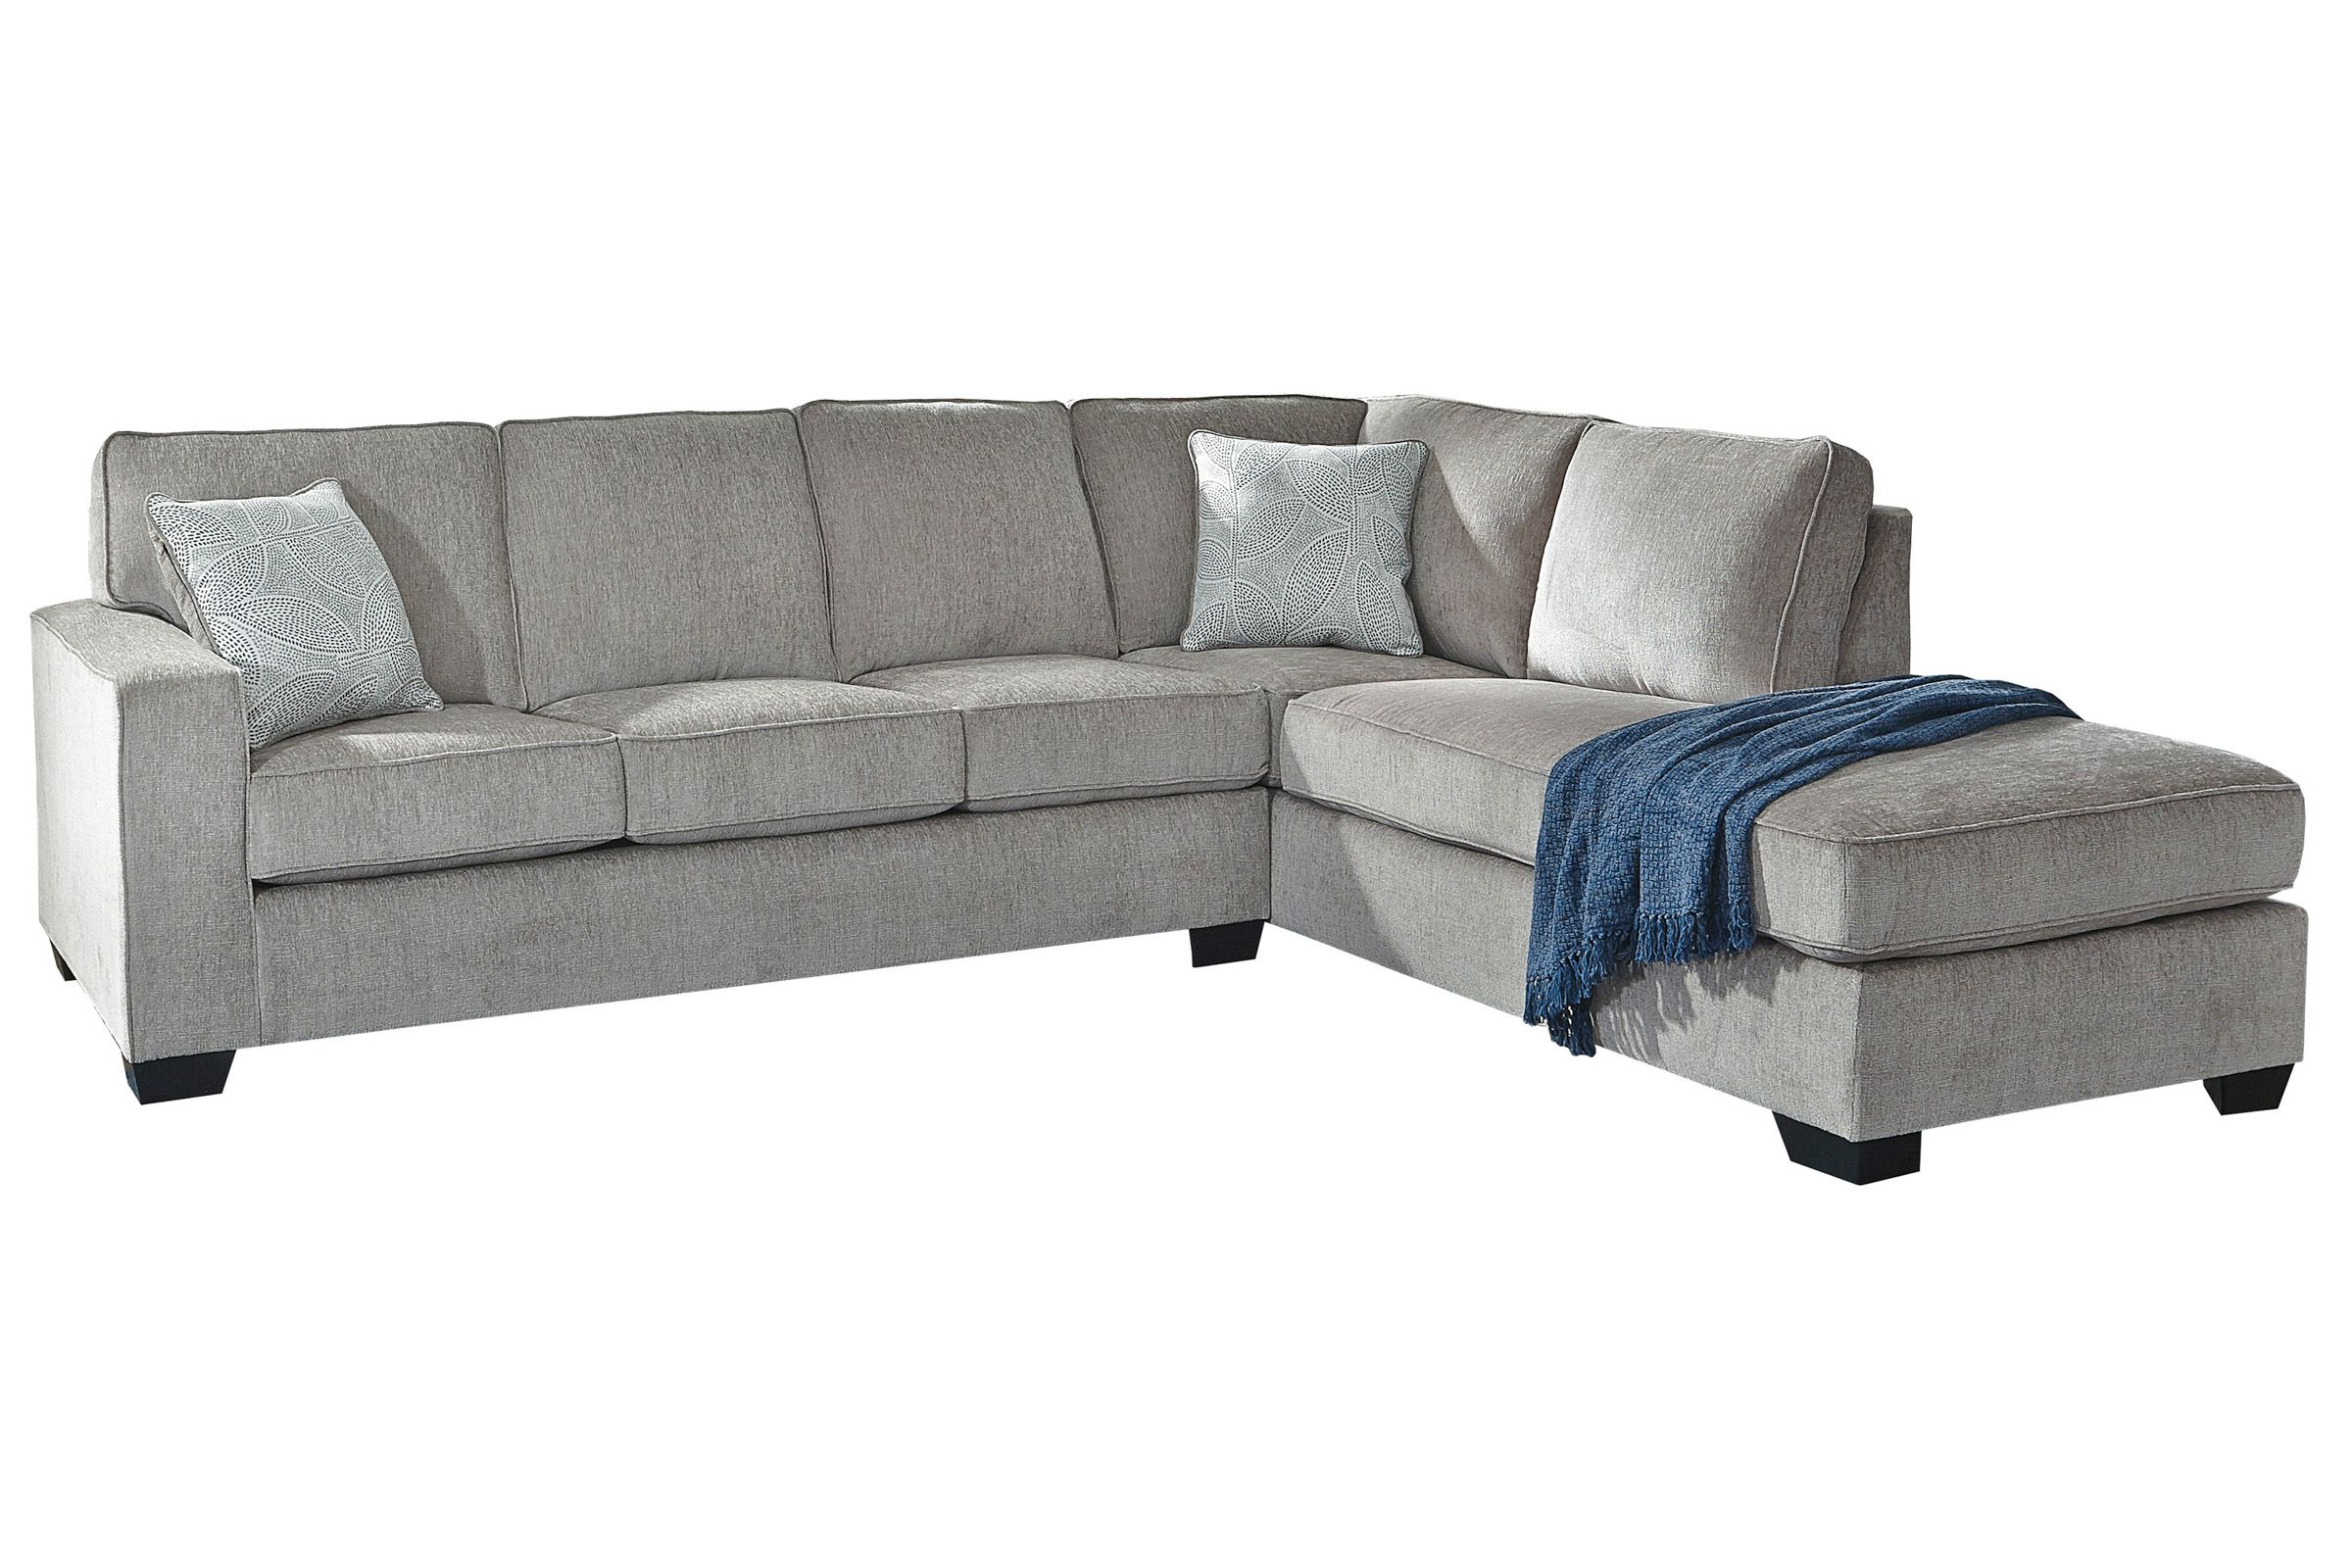 Atari Sectional With Chaise On The Right By Ashley At Gardner White